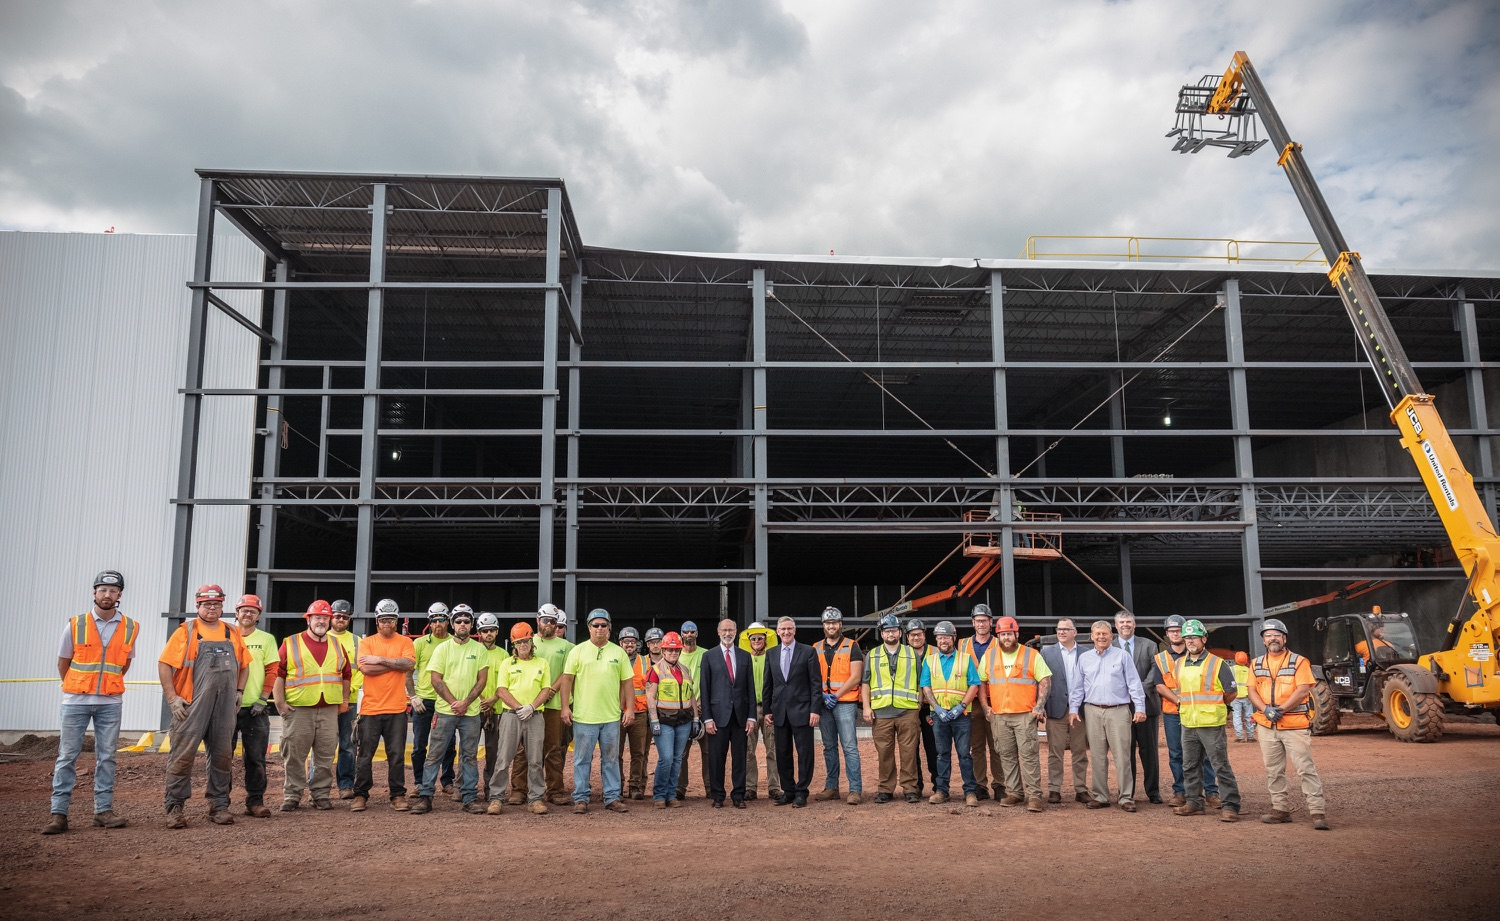 """<a href=""""https://filesource.wostreaming.net/commonwealthofpa/photo/20126_gov_economicDevelopment_dz_002.jpg"""" target=""""_blank"""">⇣Download Photo<br></a>Pennsylvania Governor Tom Wolf greeting construction workers as he tours the site.  Governor Tom Wolf joined Clemens Food Group leaders, Agriculture Secretary Russell Redding, Sen. Maria Collett, Rep. Steve Malagari and members of the Governors Action Team today to tour the construction of the companys new facility in Montgomery County. The Wolf Administration supported the project which will expand the business operations and create new jobs in the region. Hatfield, PA   October 8, 2021"""